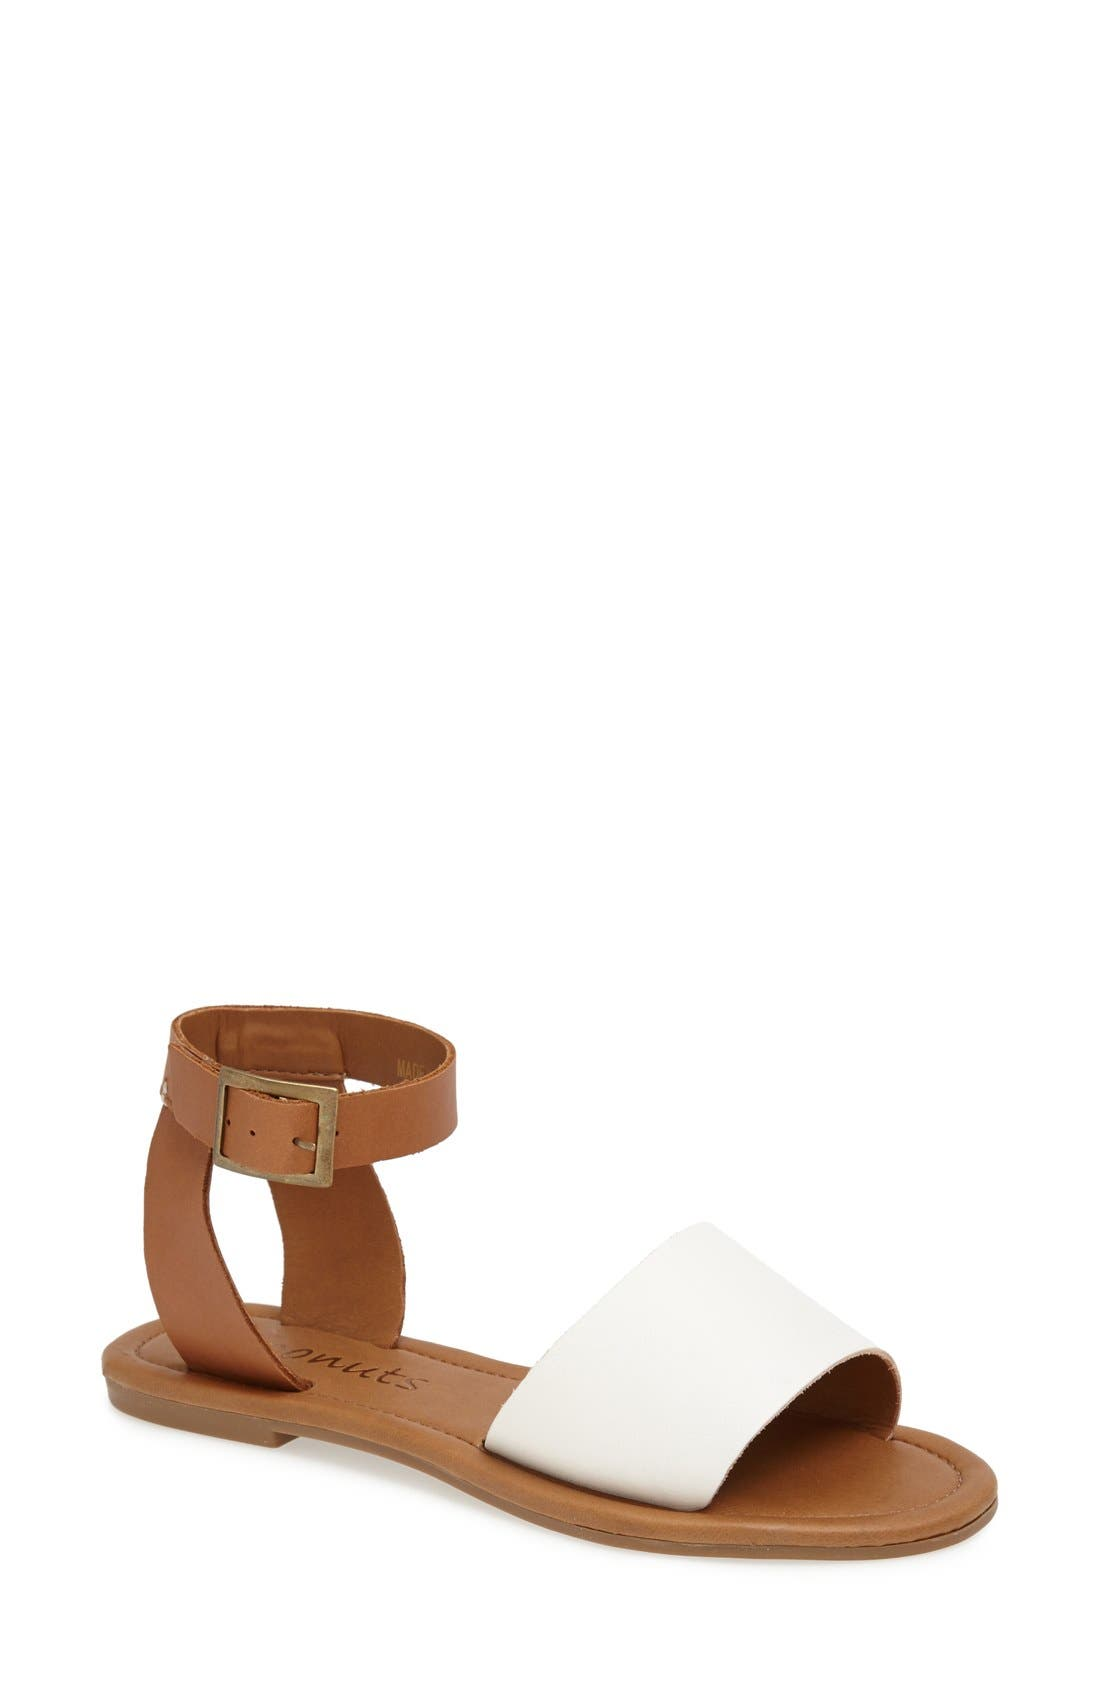 Main Image - Coconuts by Matisse 'All About' Leather Ankle Strap Sandal